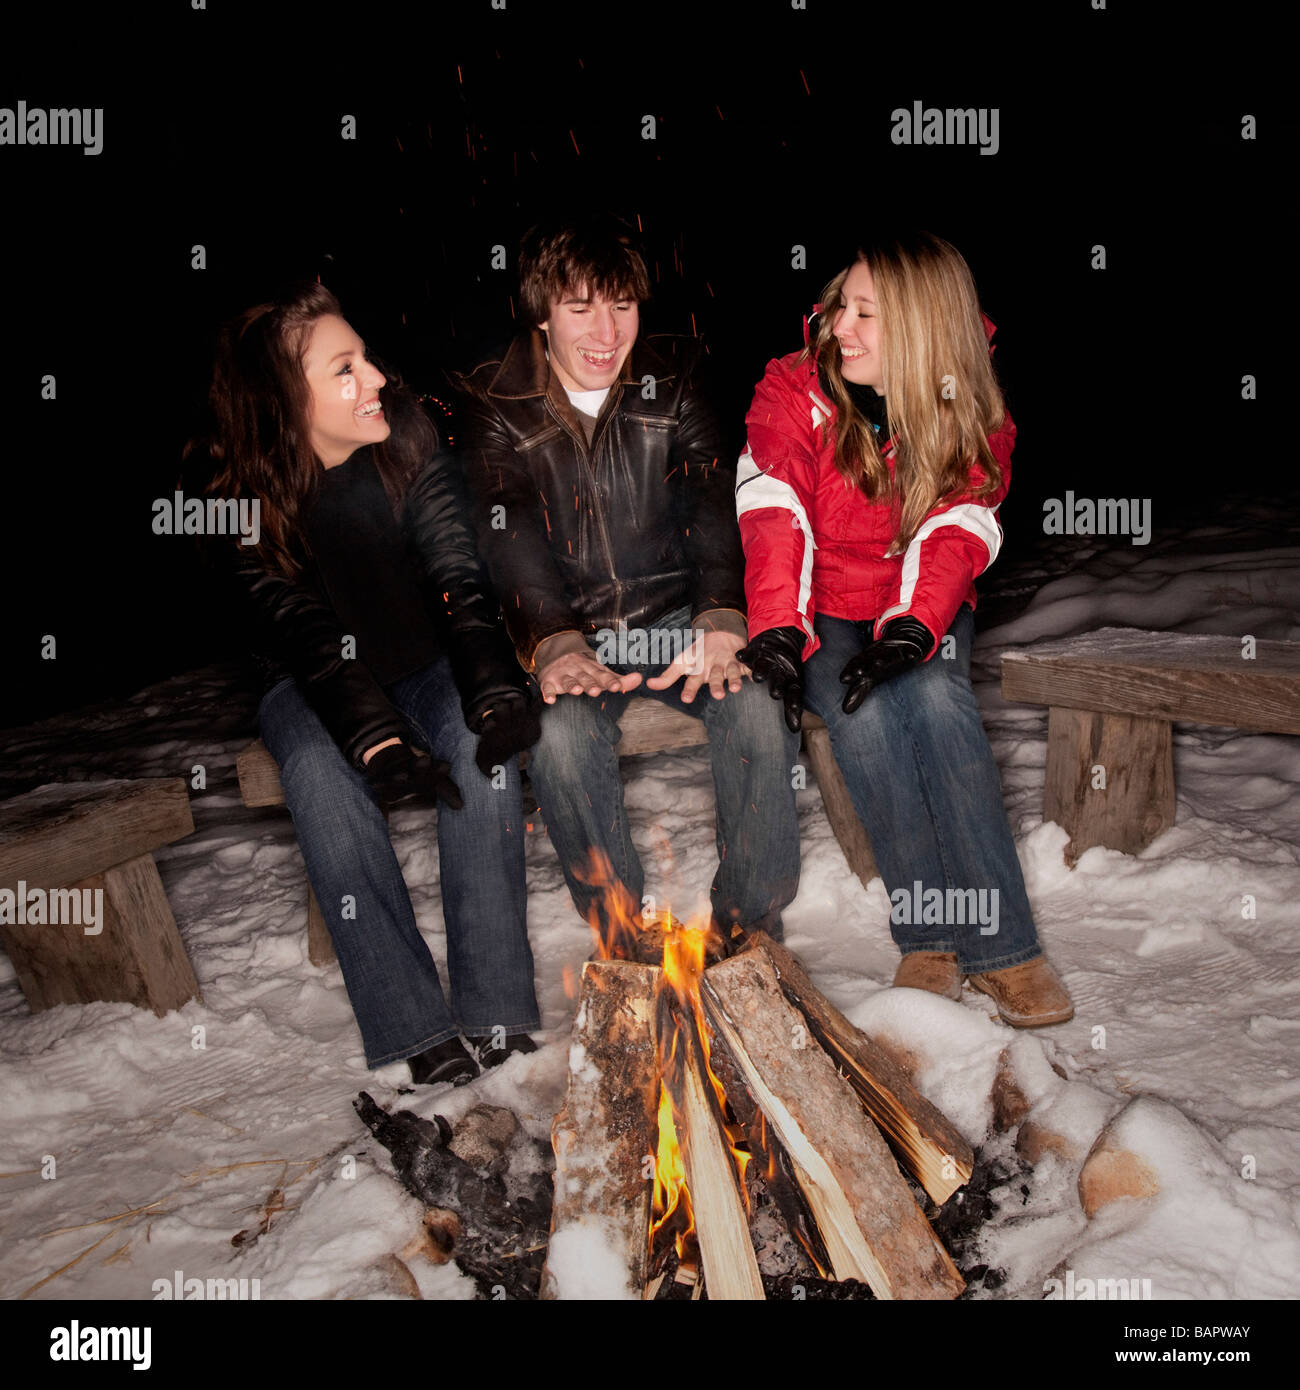 Teenagers sitting by a fire - Stock Image